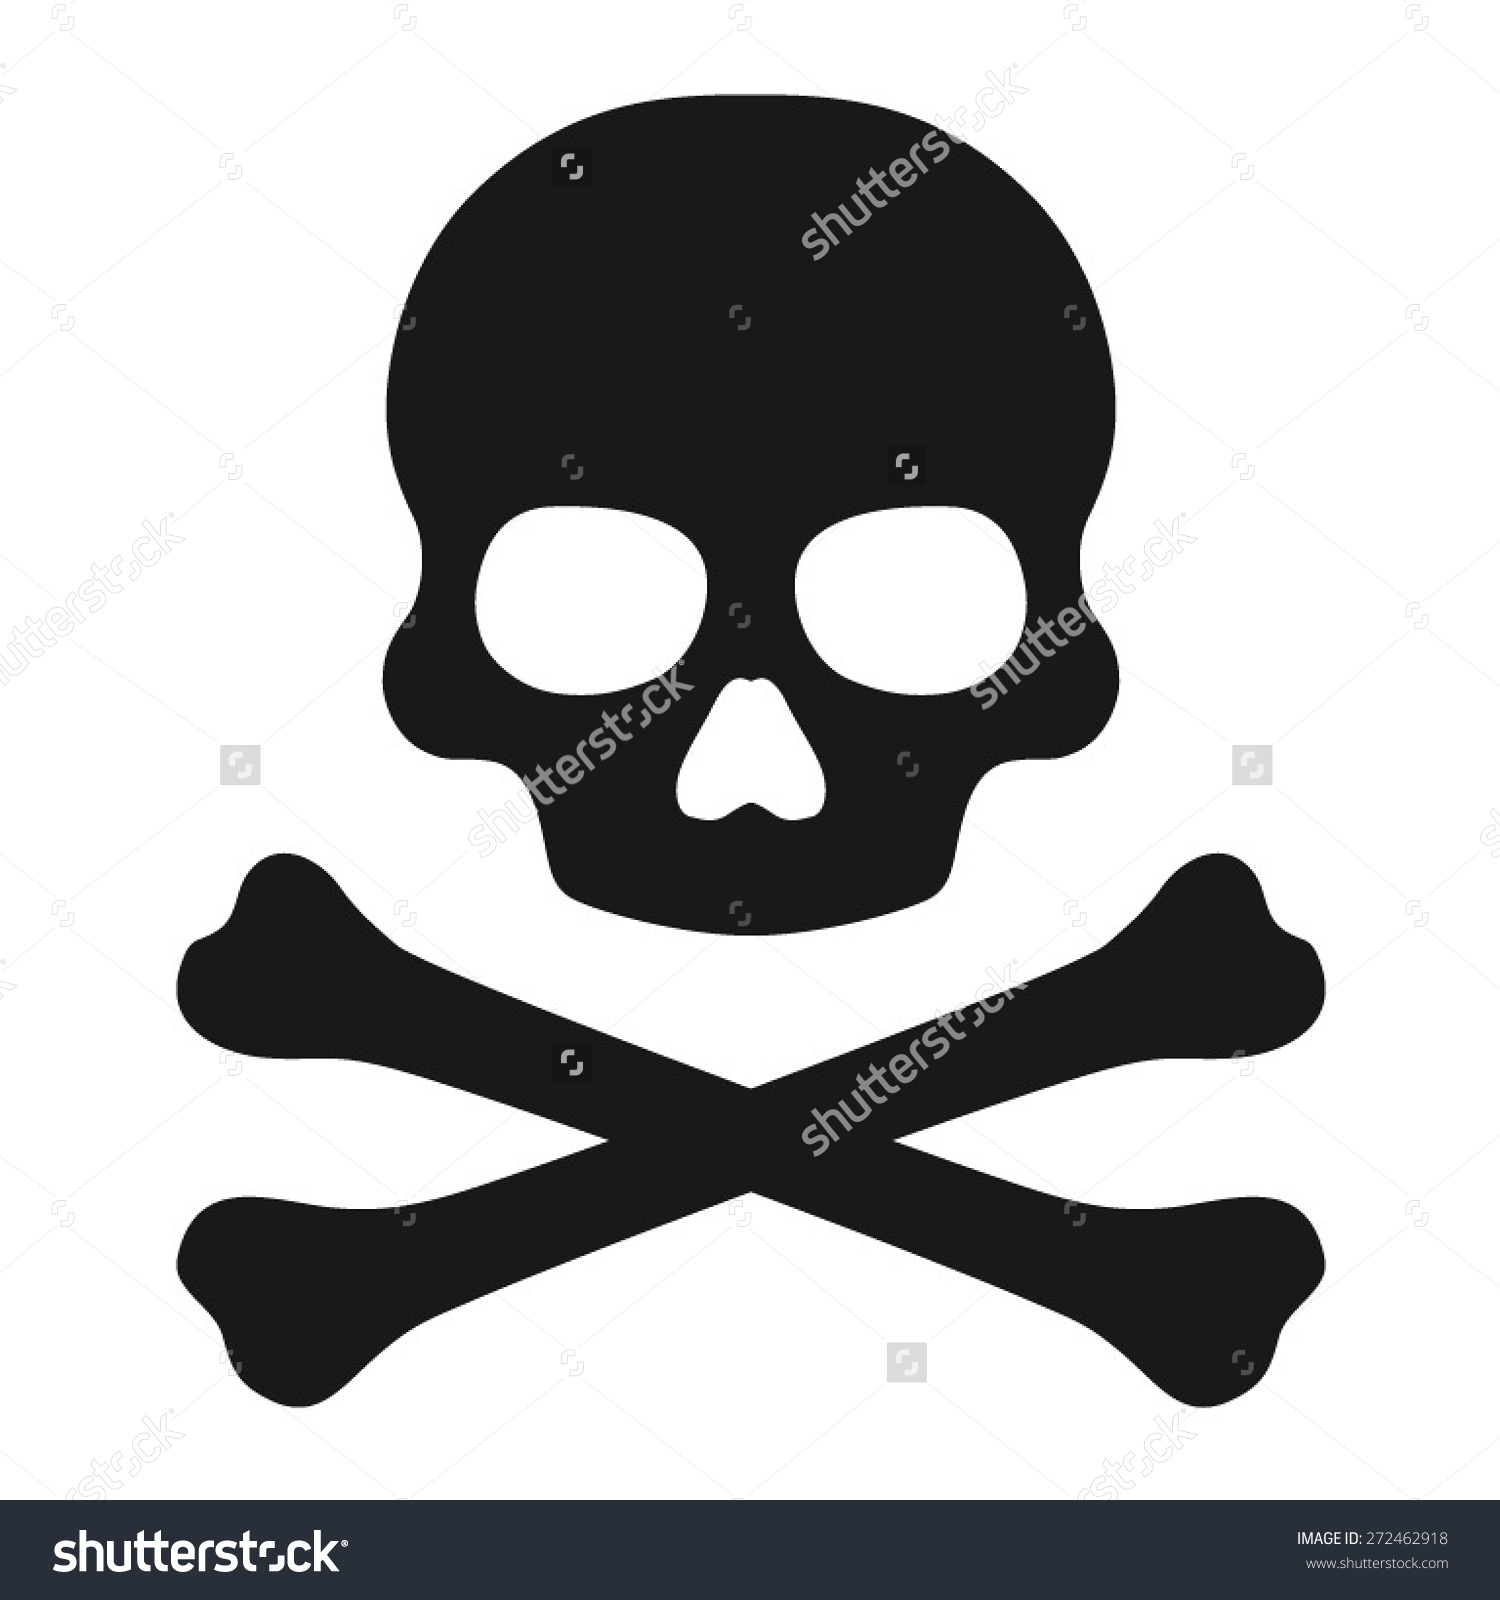 Skull Poisonous Stock Vectors & Vector Clip Art.